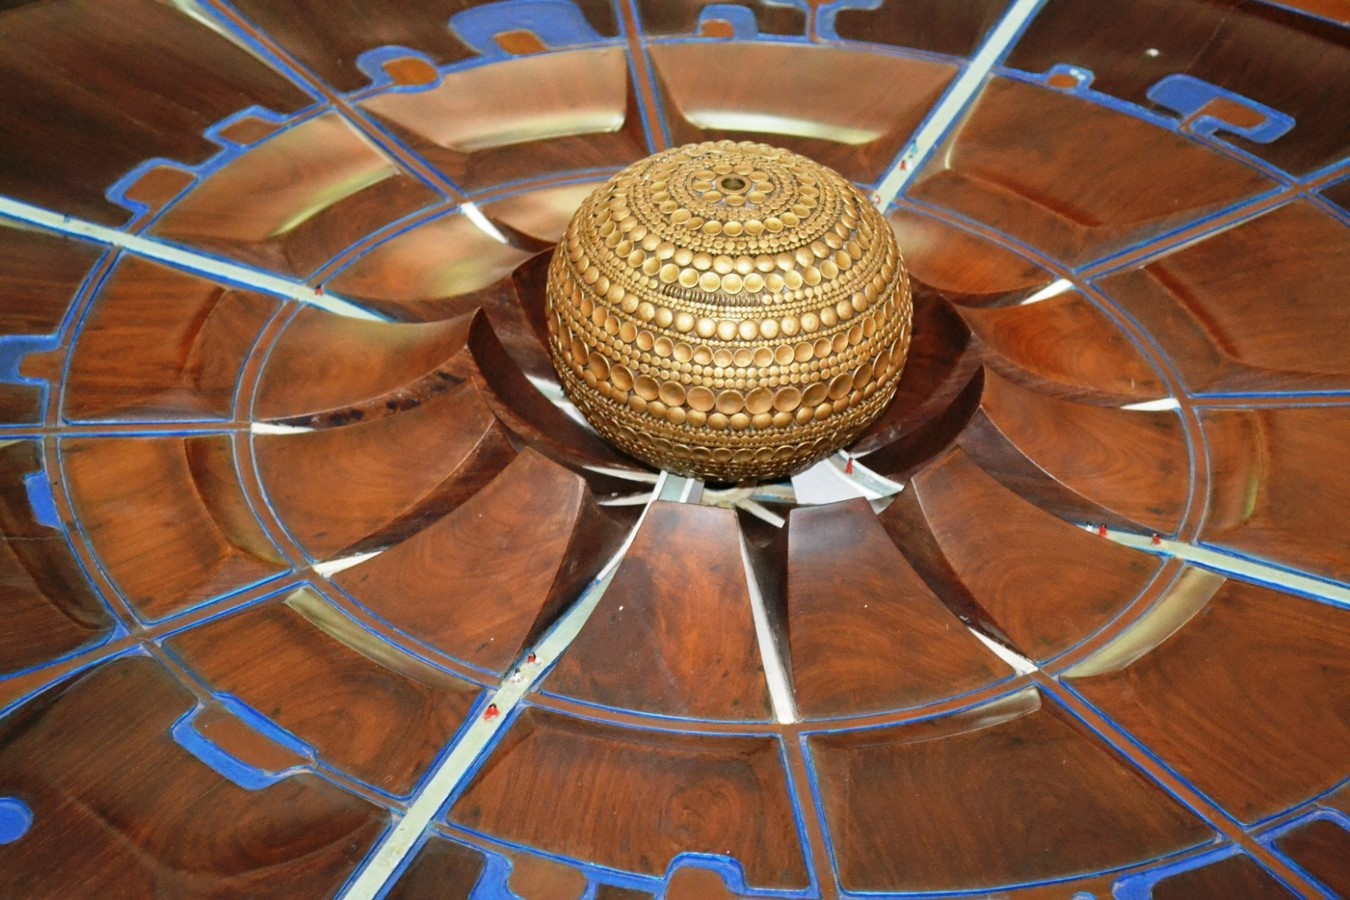 Paolo Tommasi's contribution in shaping Auroville- Sheet7